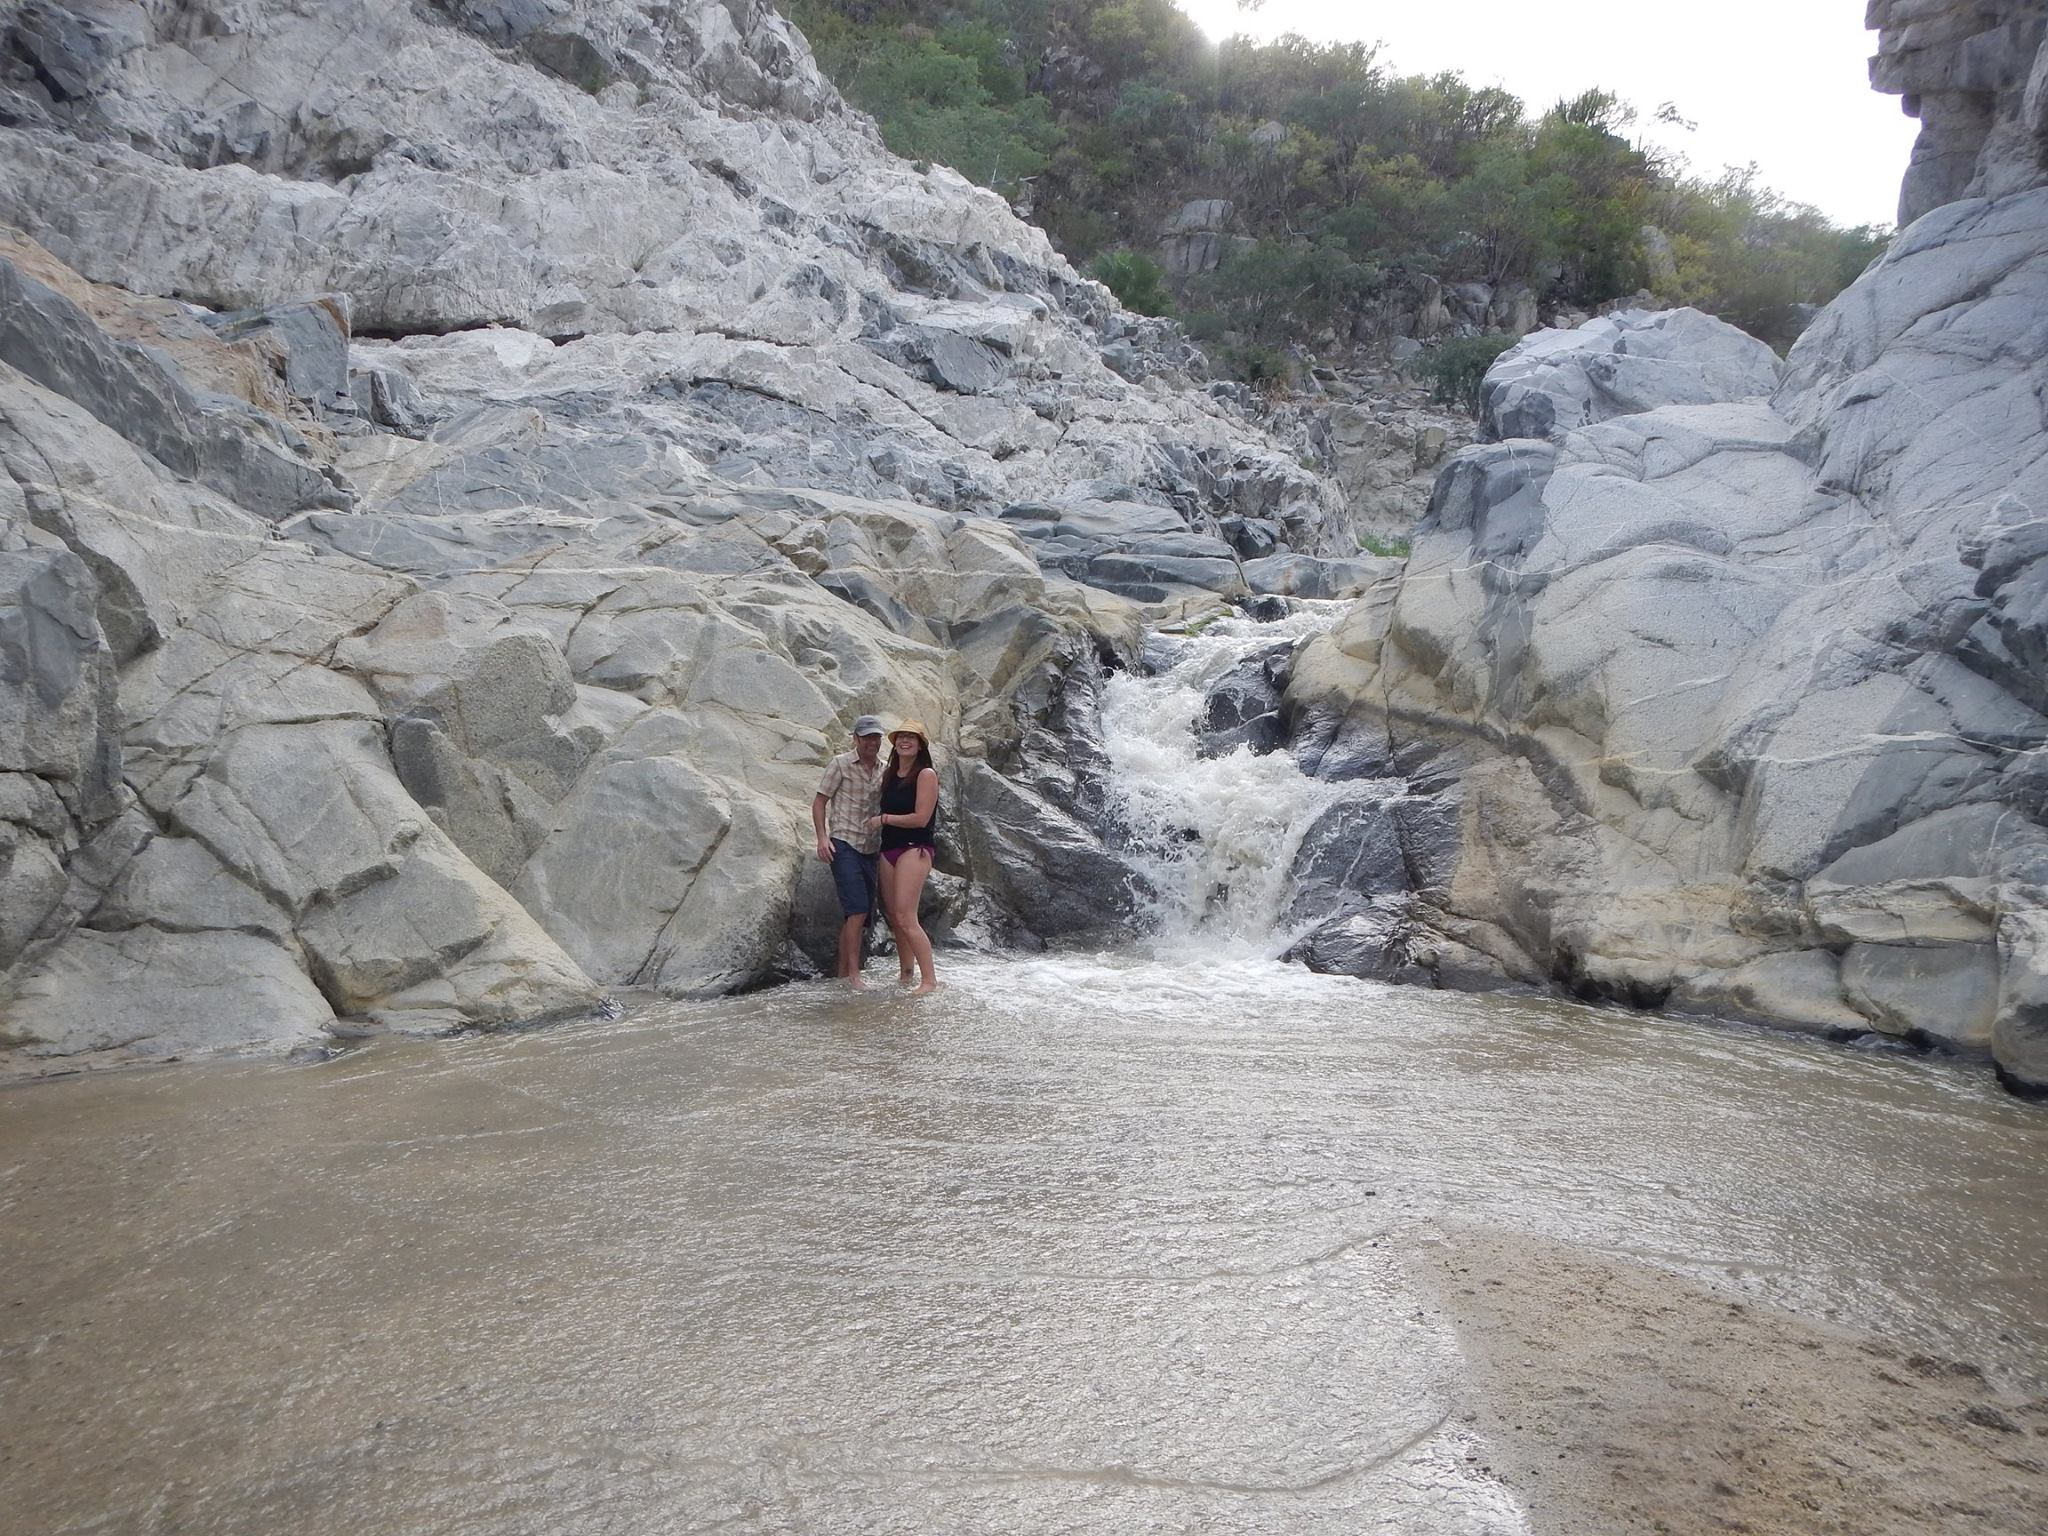 Hiking in Mexico